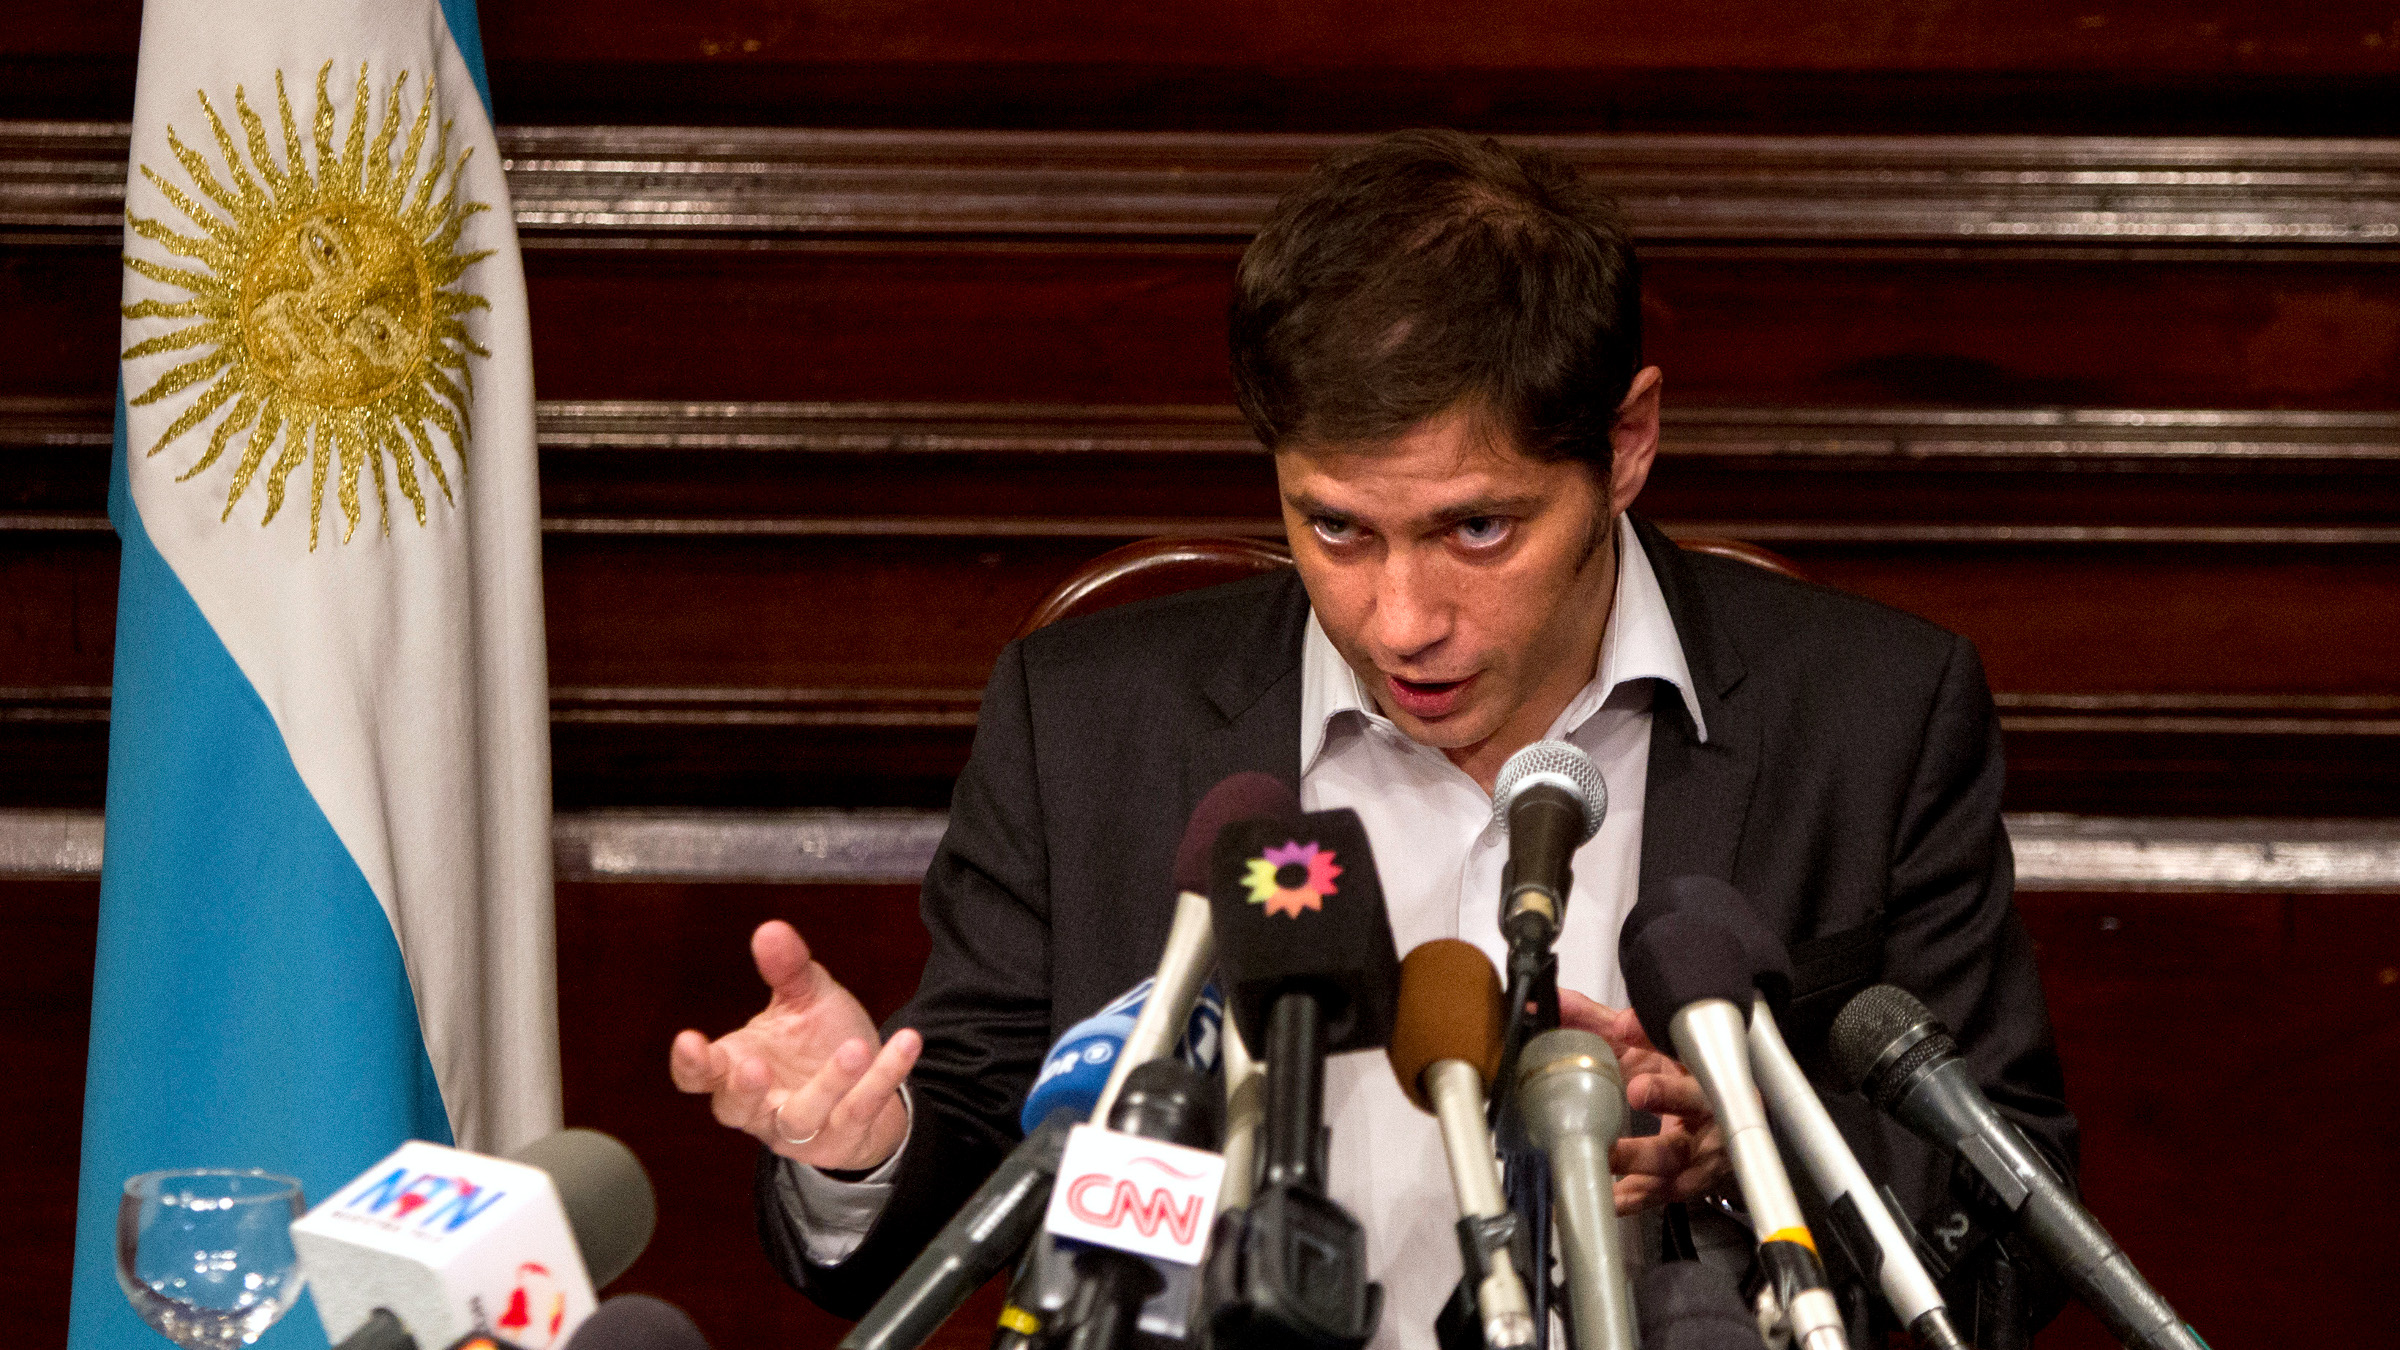 Argentina's Economy Minister Axel Kicillof speaks to the media at a press conference at the Argentine Consulate in New York July 30, 2014. Kicillof on Wednesday said the country offered a group of holdout creditors the same reduced payment terms it has agreed to pay other holders of its restructured bonds, but the holdouts refused the offer. The holdouts, a group of hedge funds that bought the bonds at a steep discount following Argentina's default on $100 billion of debt in 2002, also refused to ask a U.S. court to stay an order the blocks Argentina from paying its other creditors, Kicillof said.